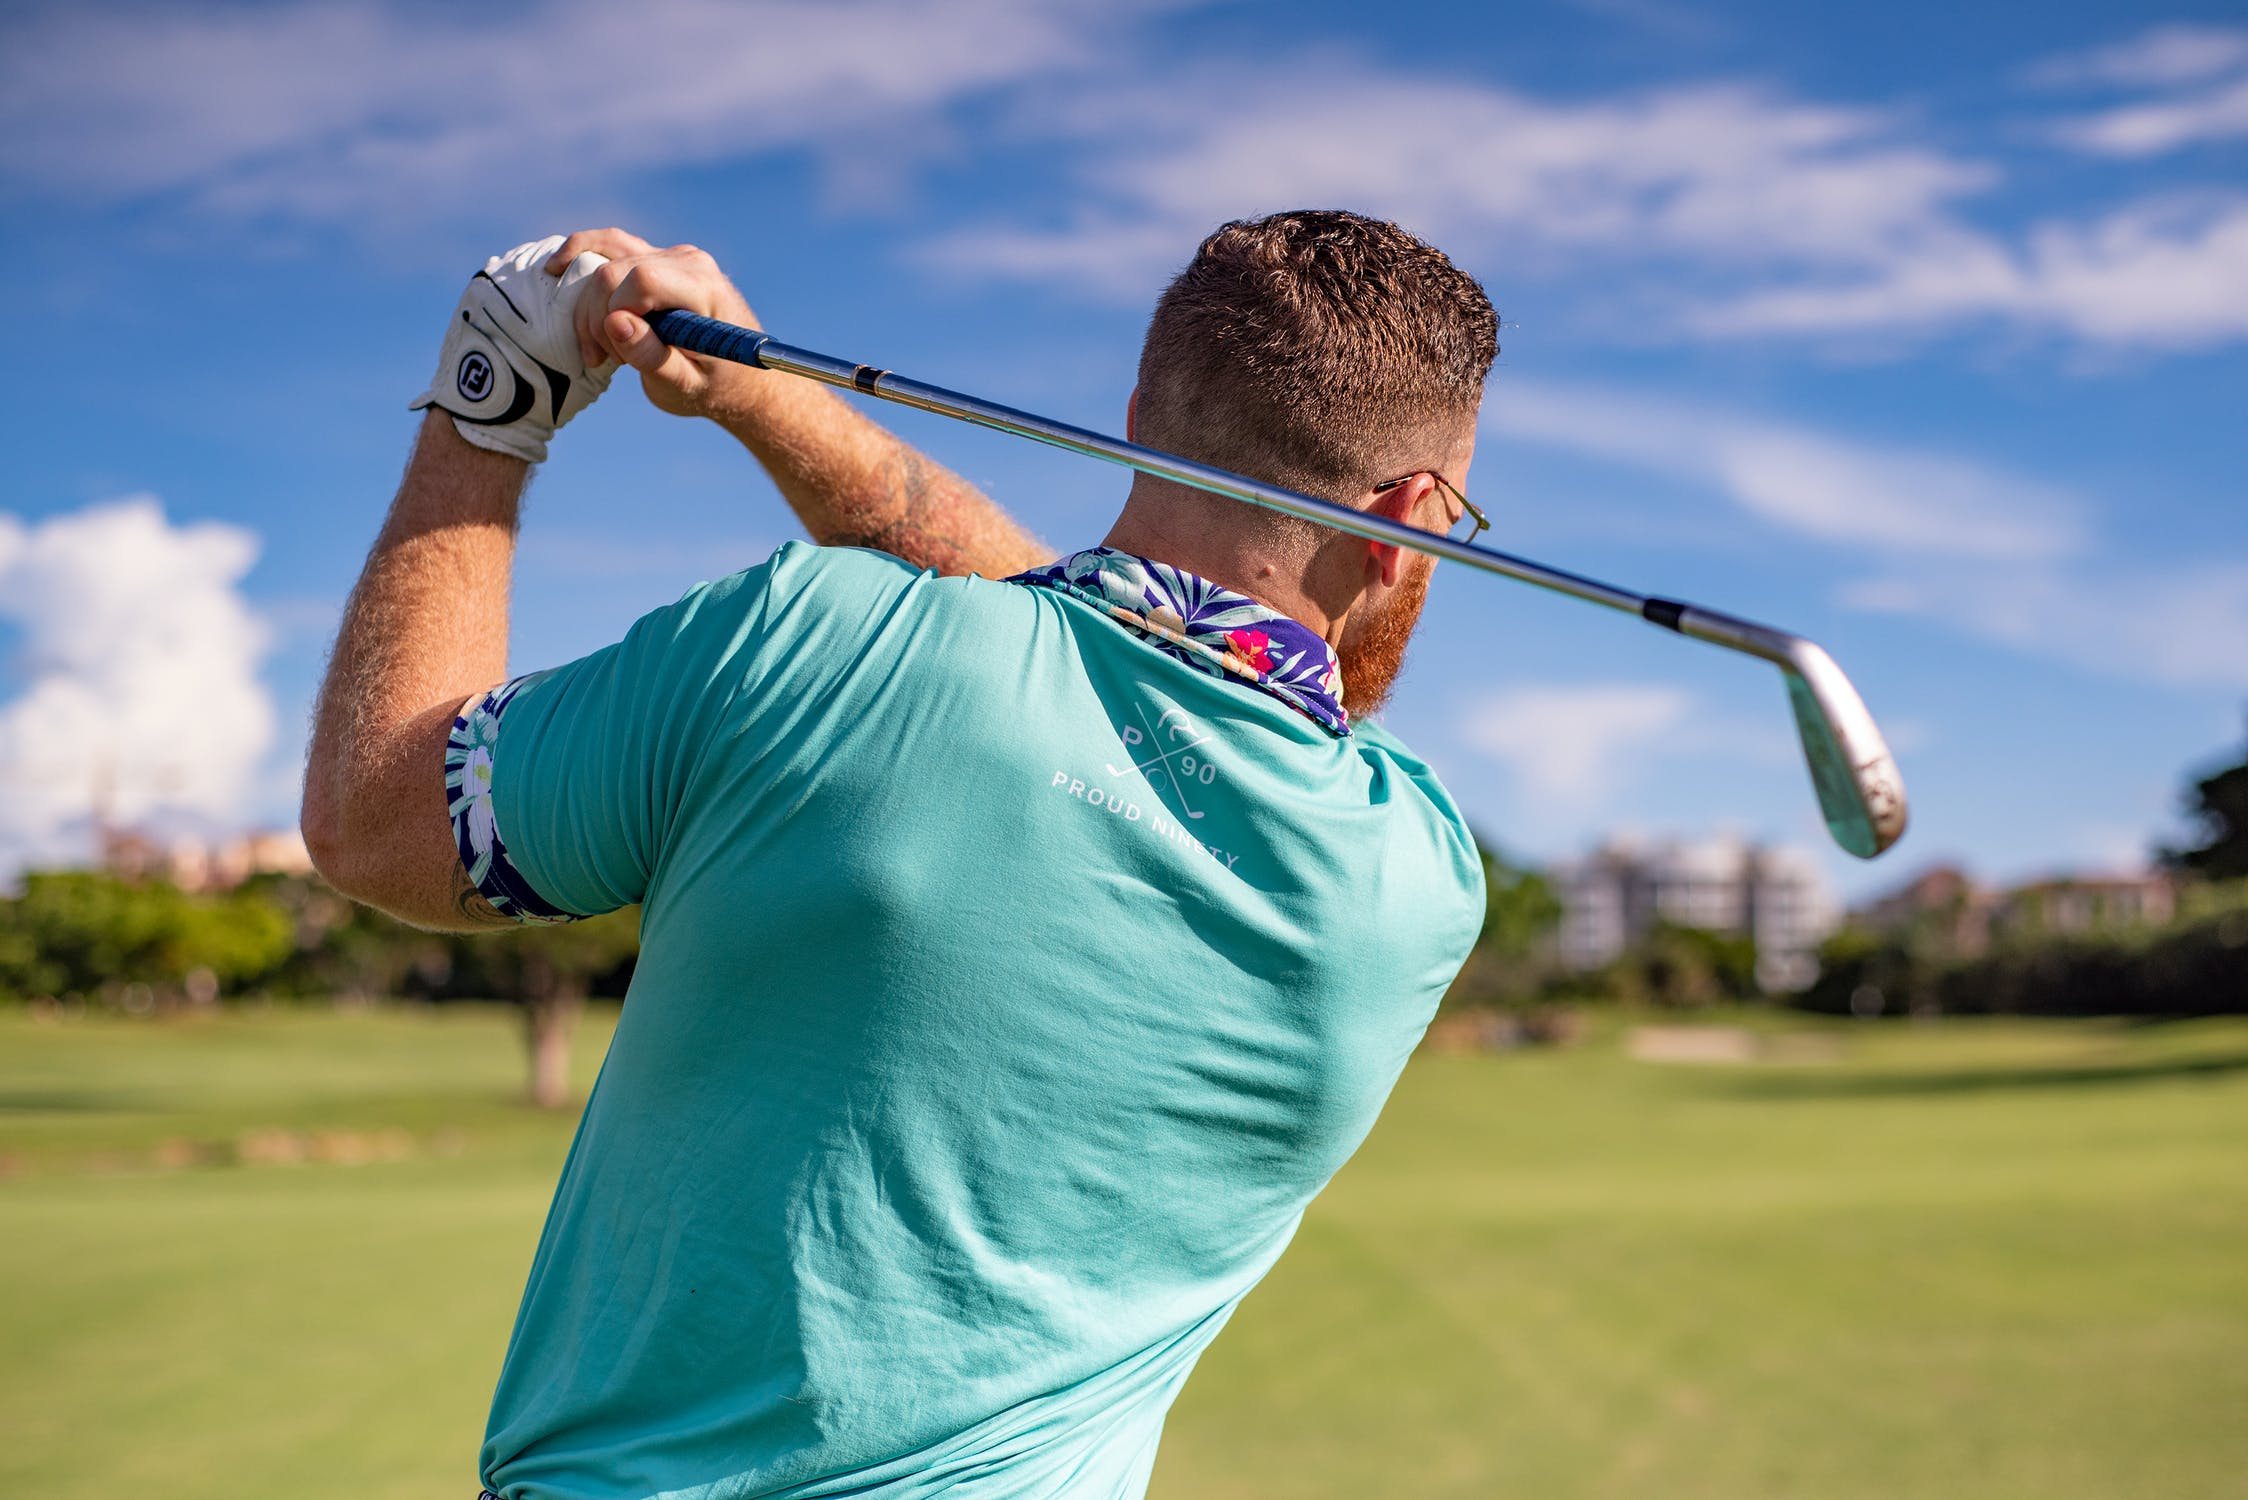 Improving Your Golf Game